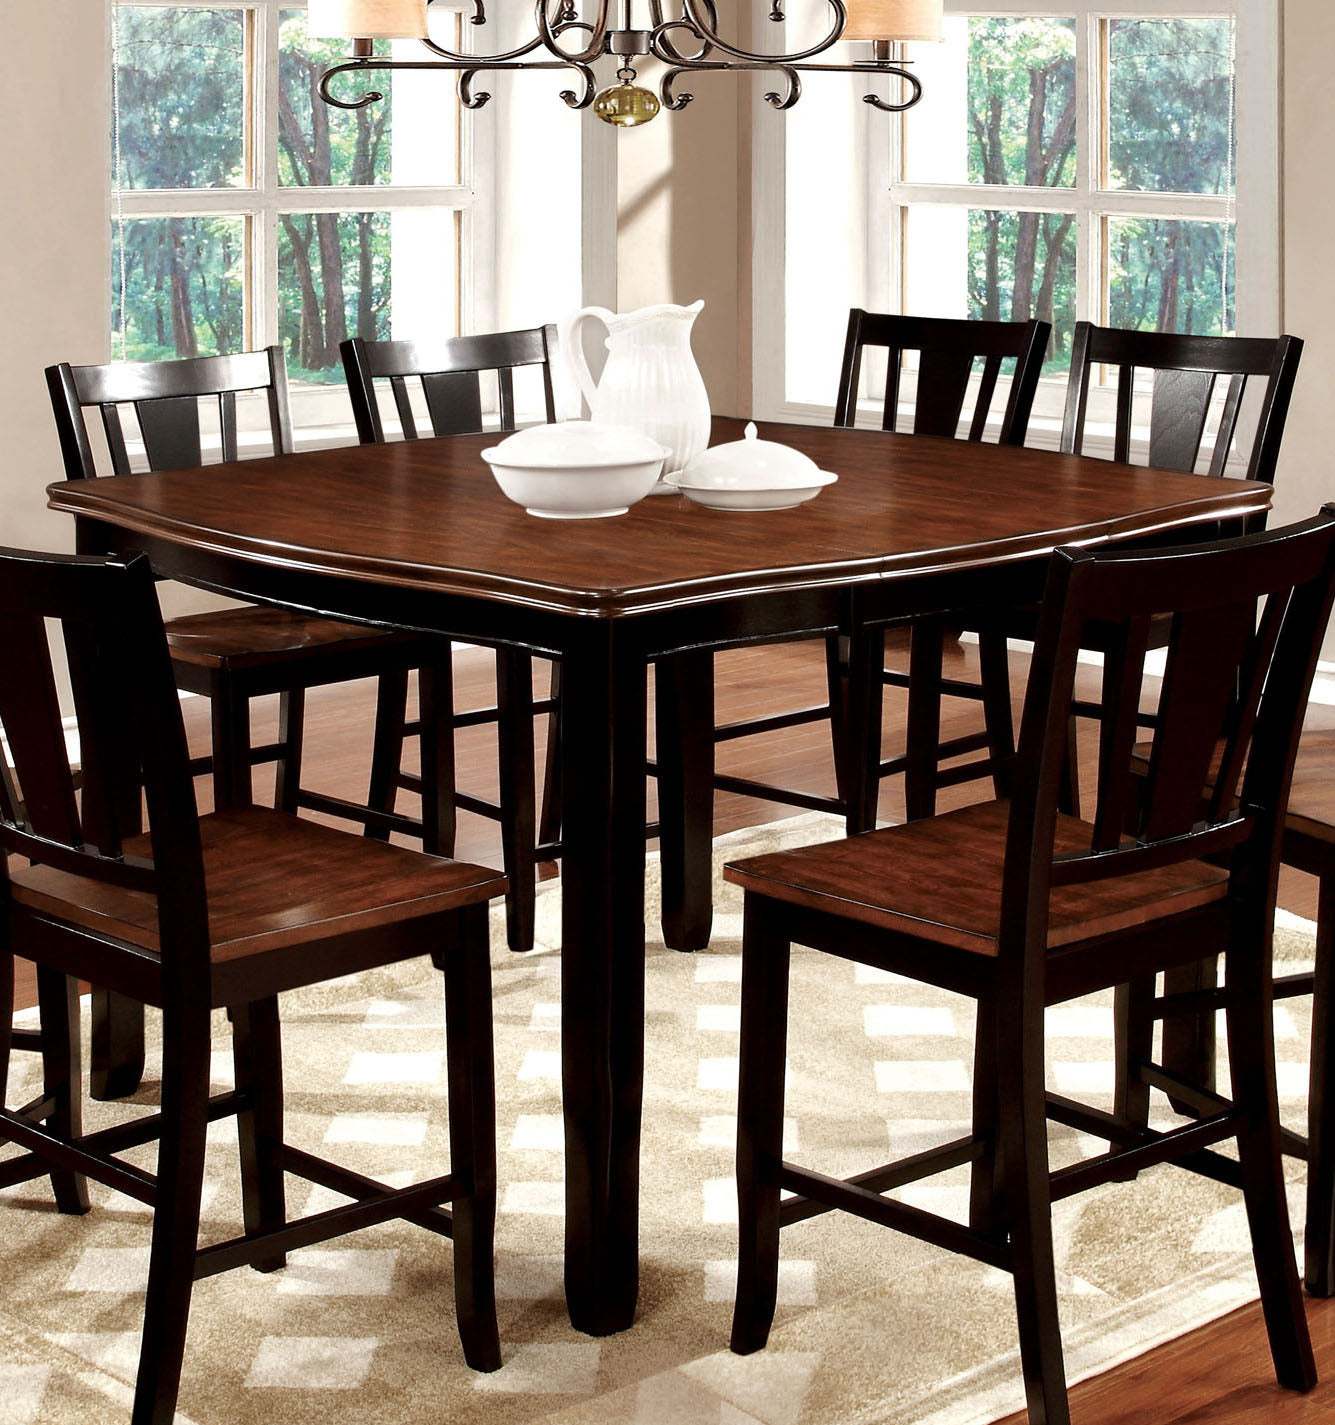 Dover CM3326BC-PT Transitional Black Cherry Wood Counter Height Table